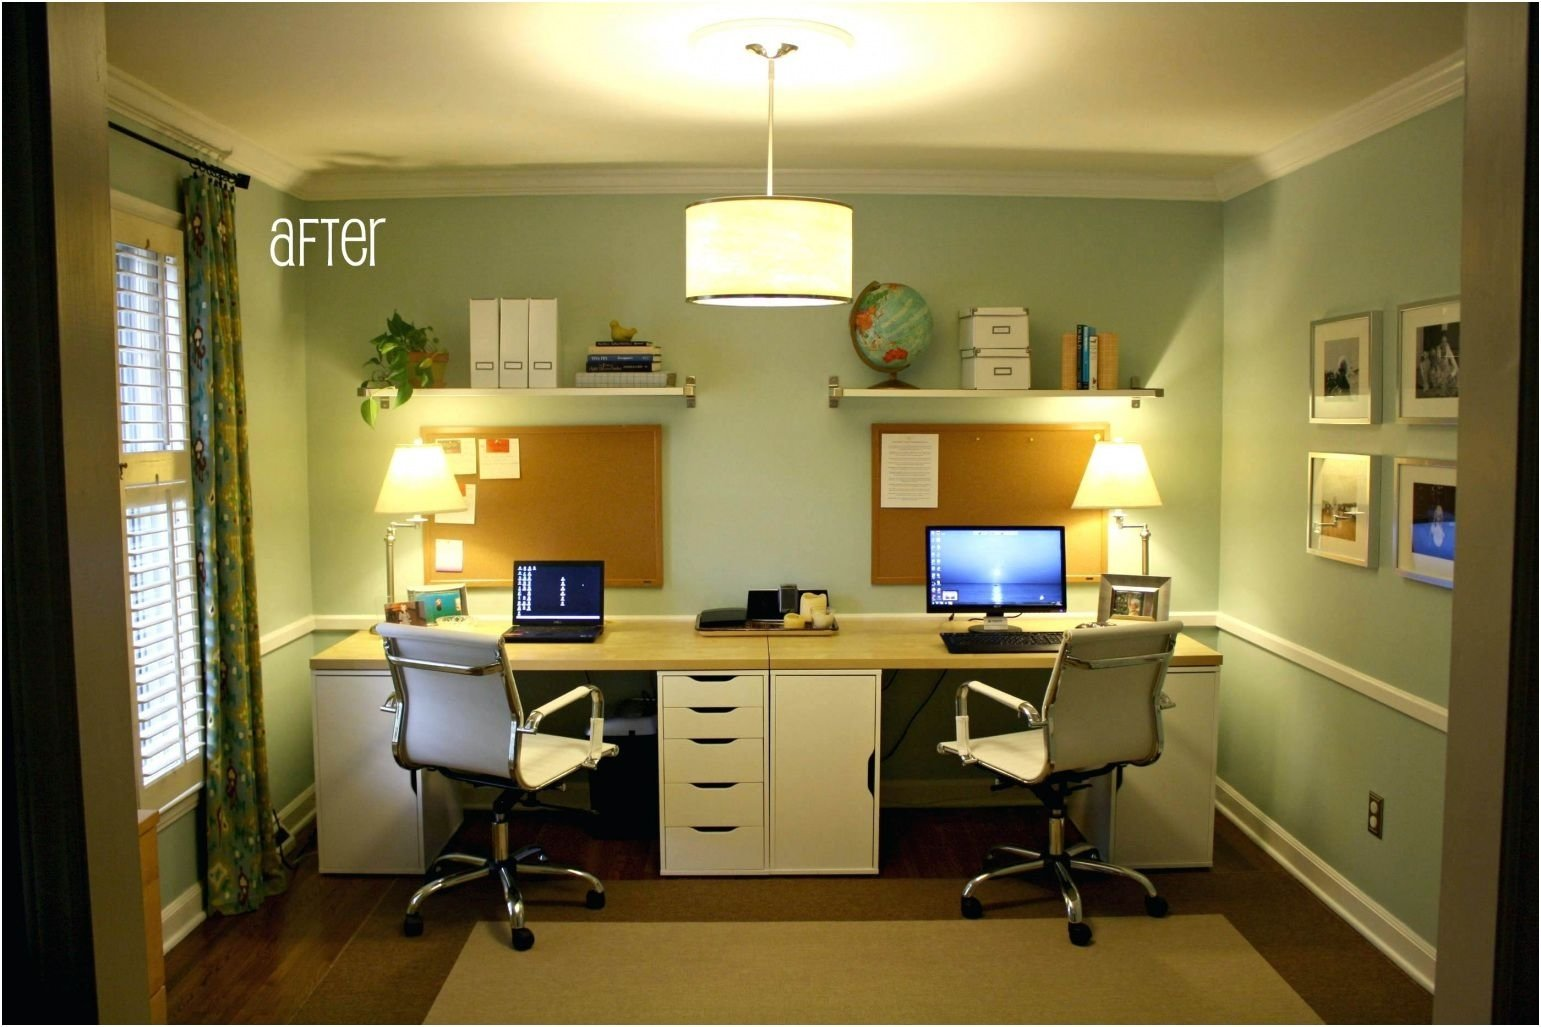 10 Unique Home Office Ideas On A Budget dual desk home office on a budget as well as modern dual desk home 2020